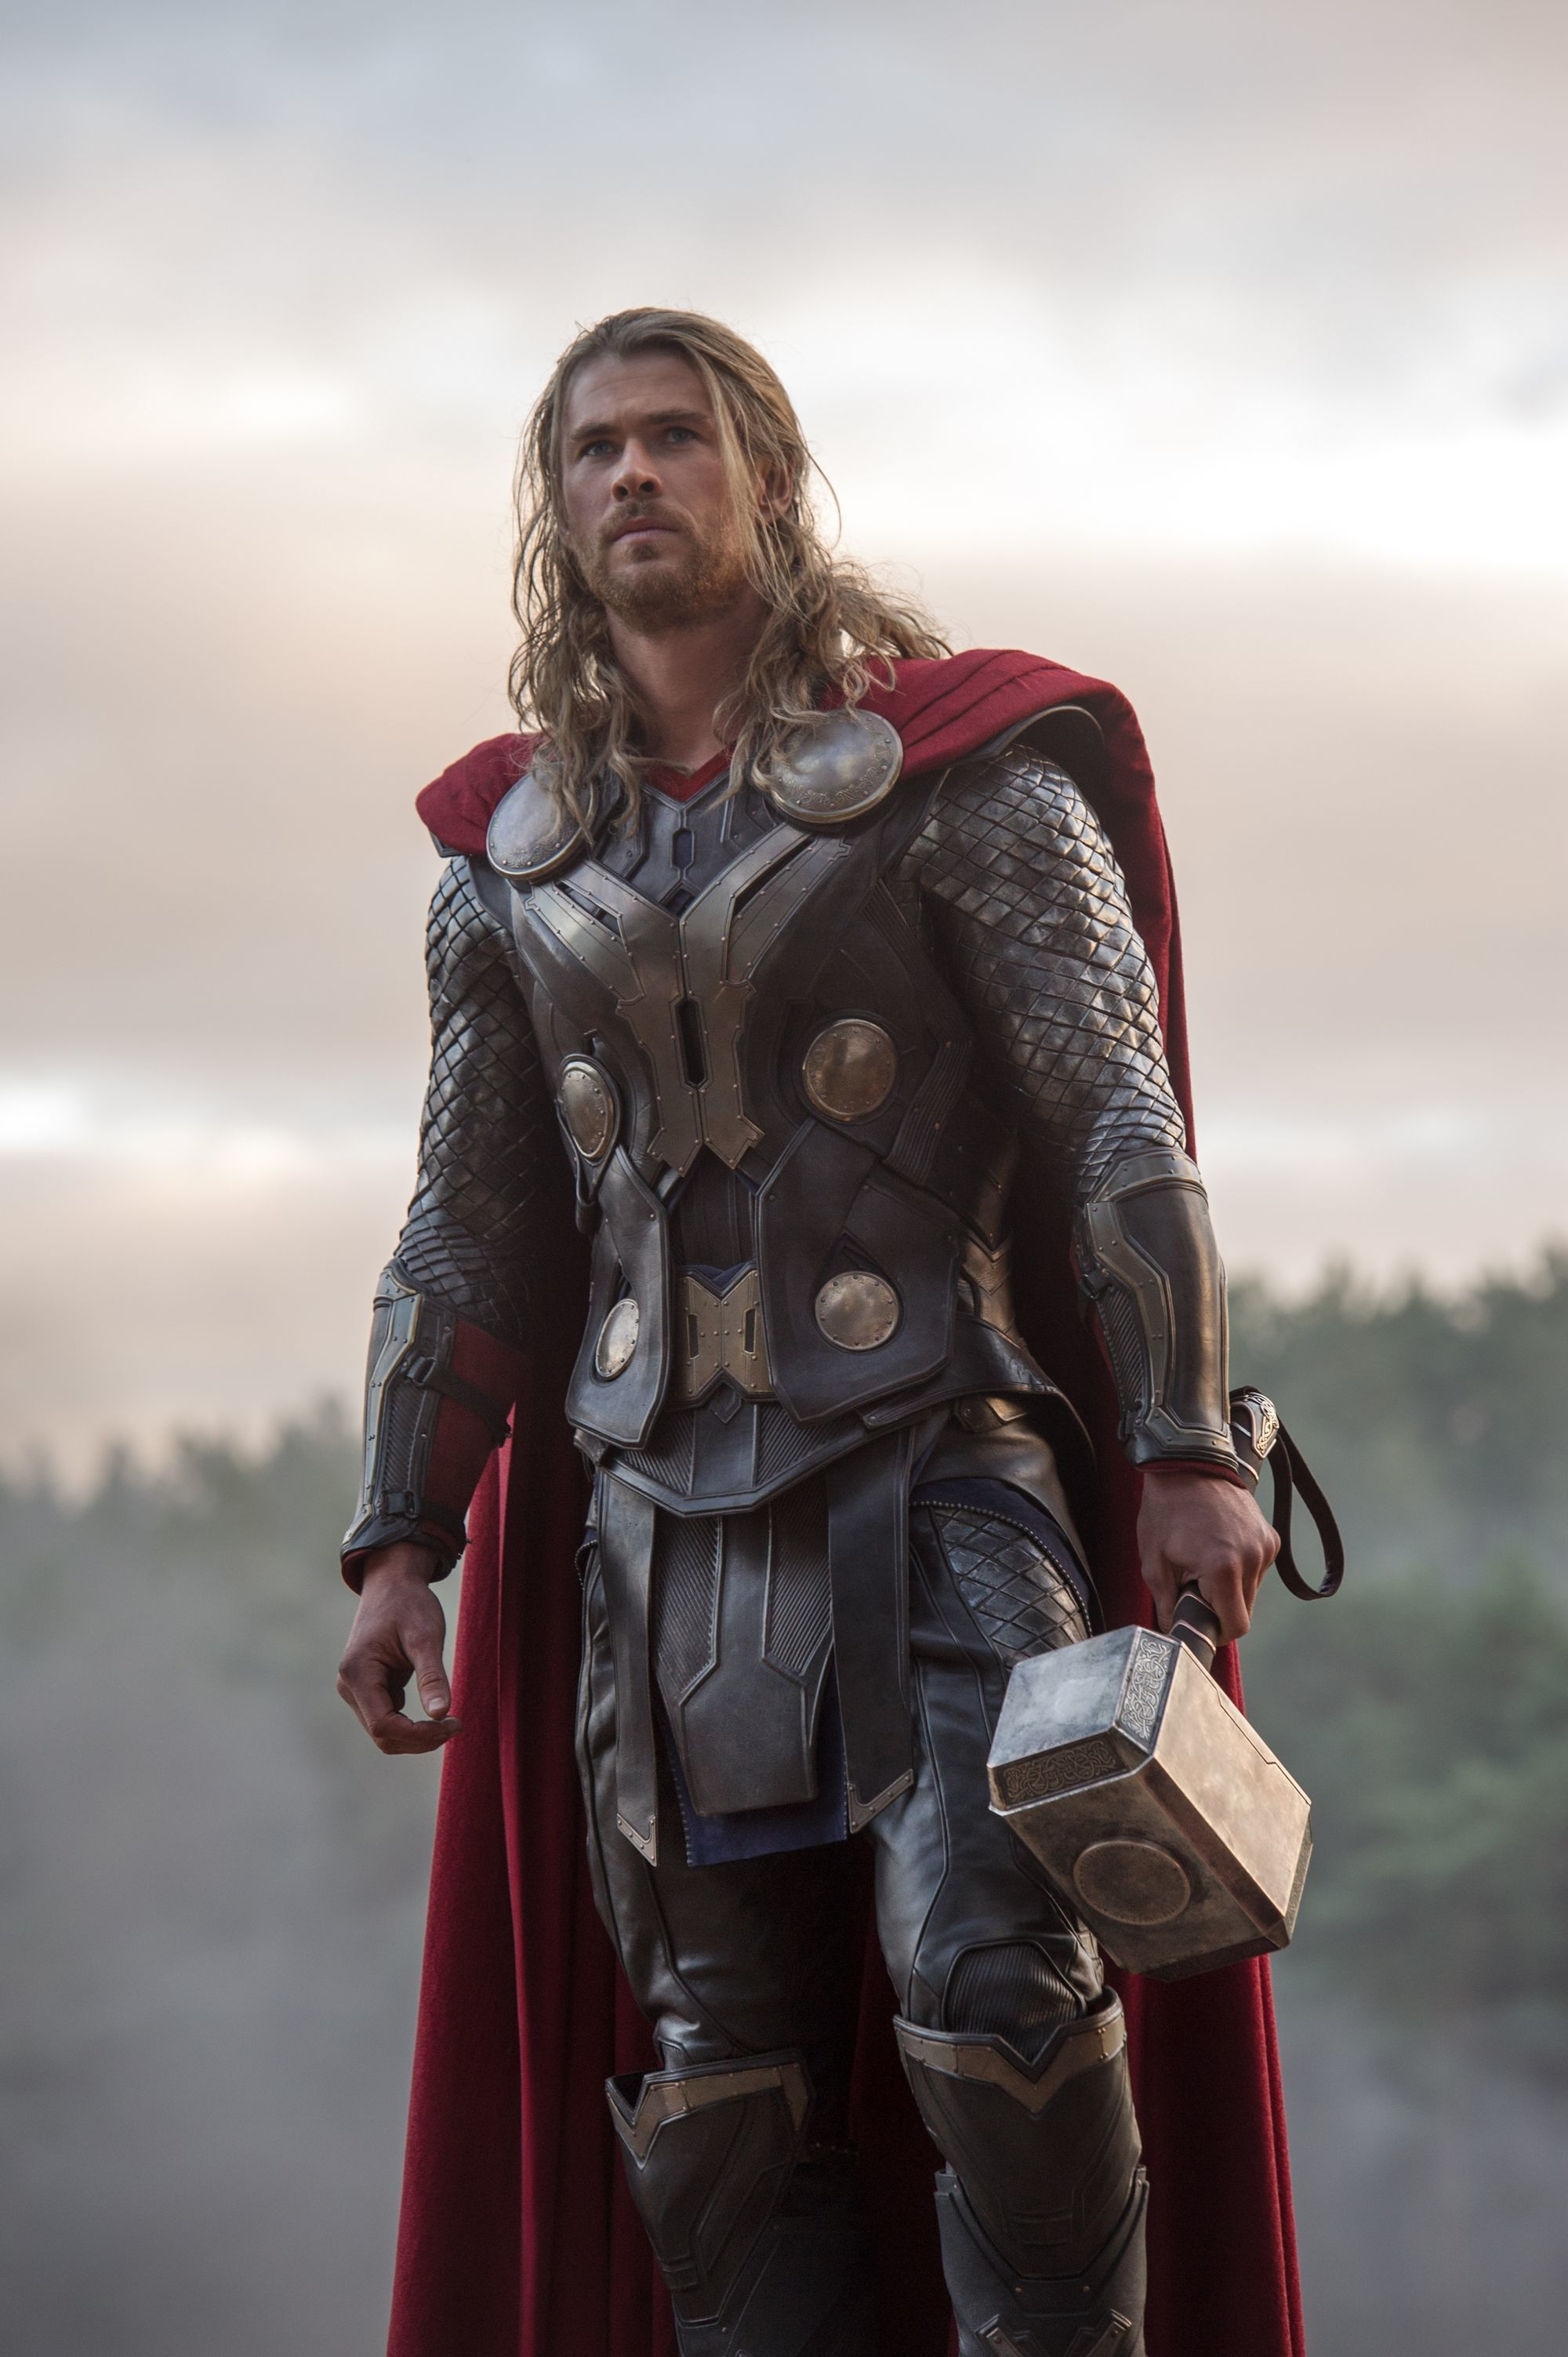 chris-hemsworth-as-thor.jpeg